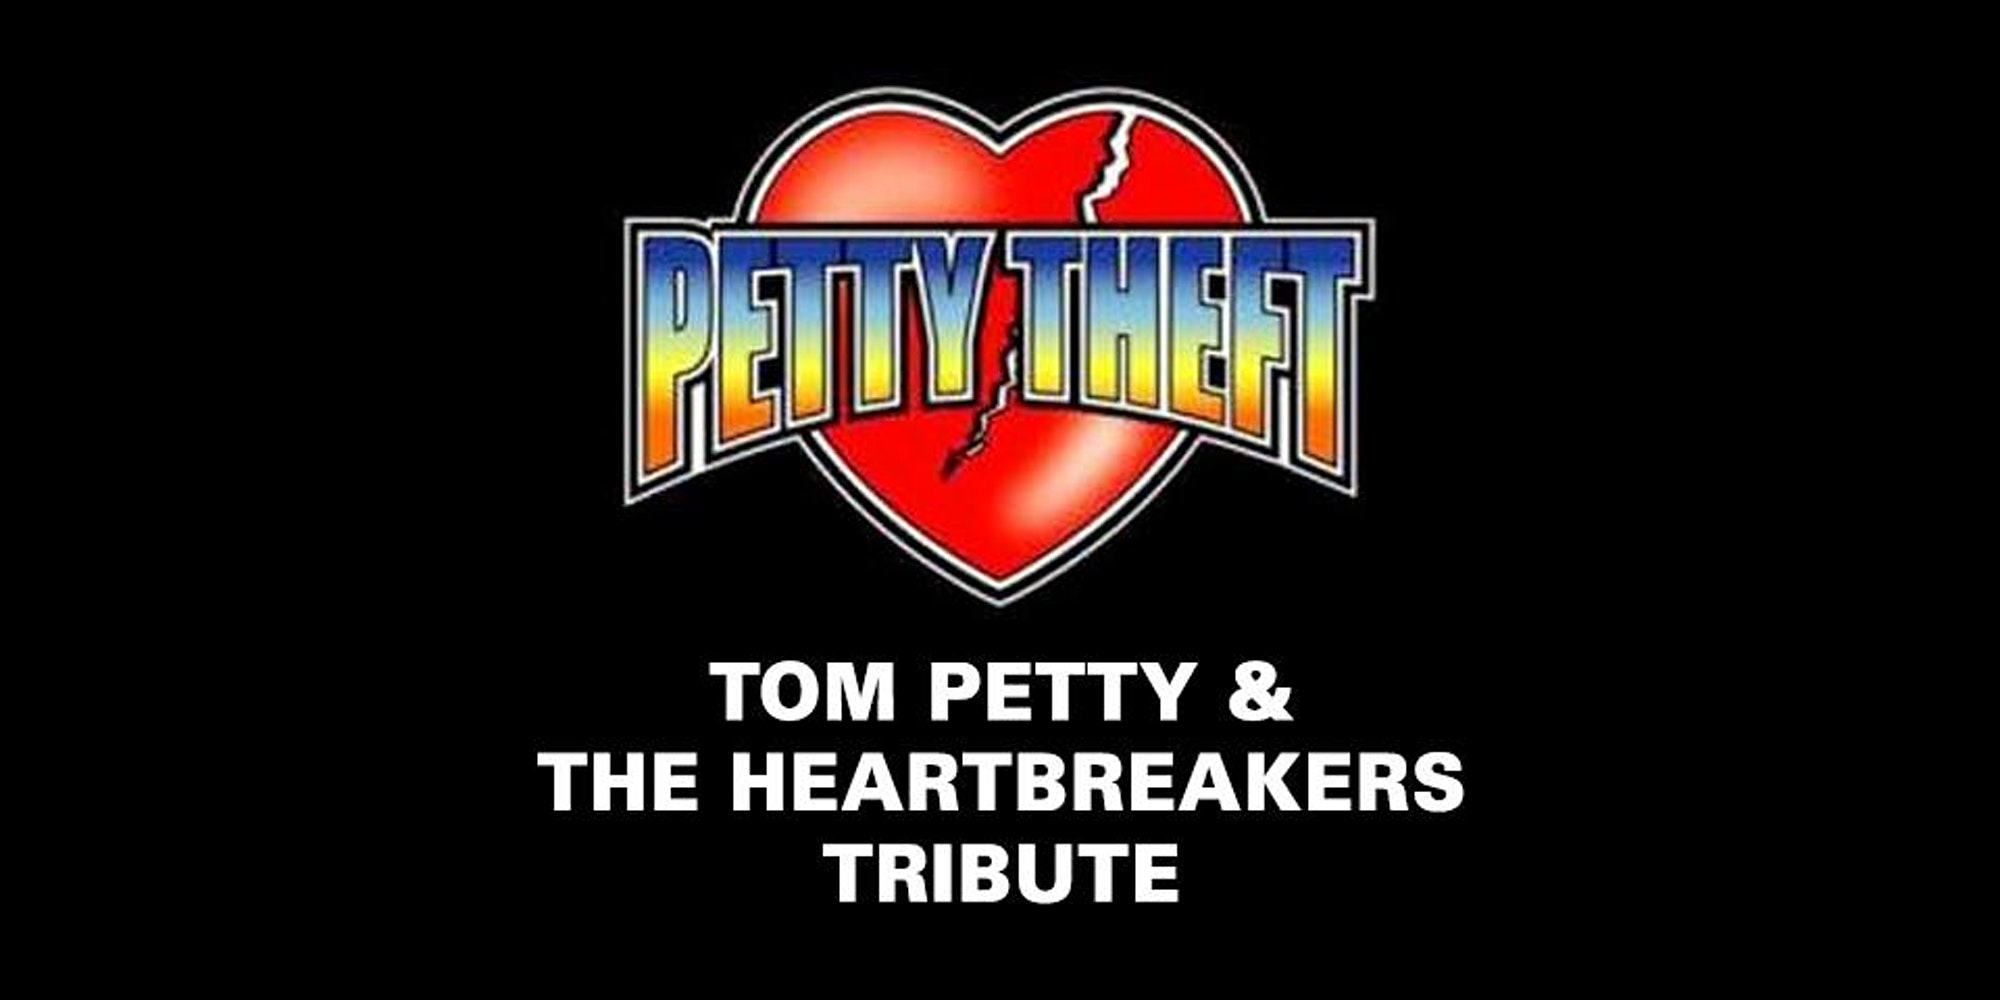 Promo image of Petty Theft (Tom Petty Tribute)